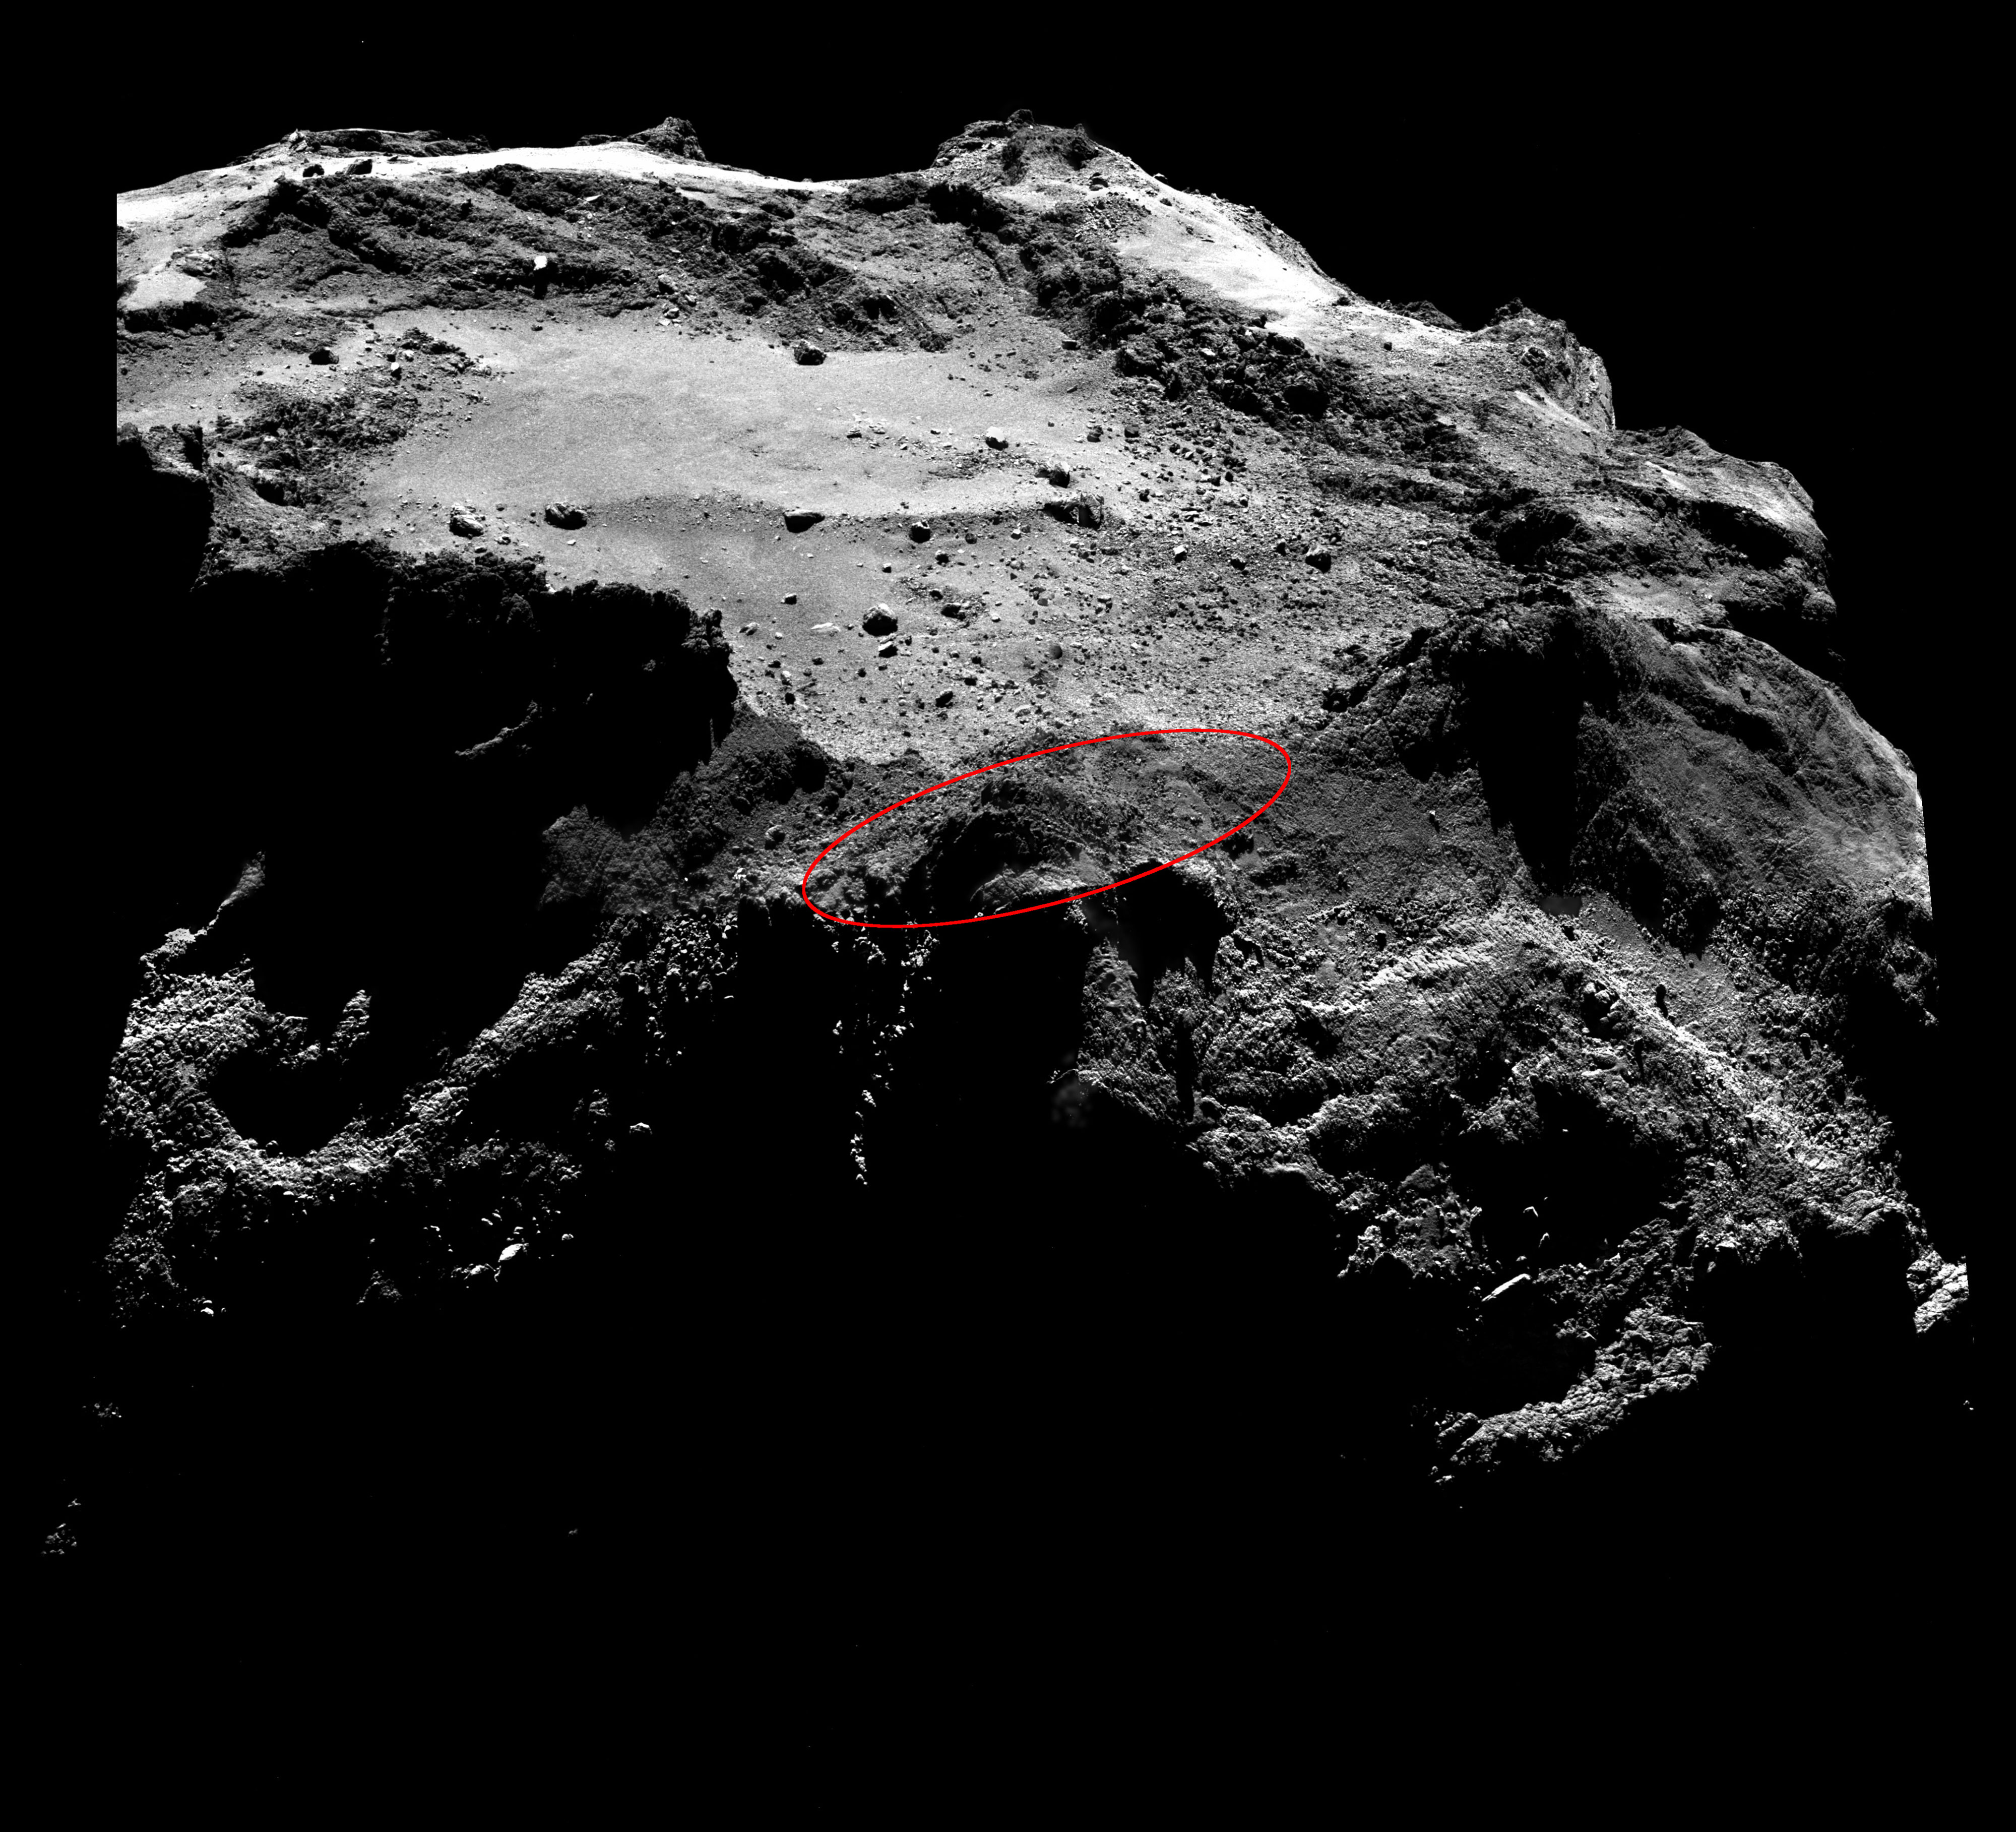 An example of the OSIRIS narrow-angle camera mosaics (below) used to search for Philae. The lander would measure only about three pixels across in these images. Credit: ESA/Rosetta/MPS for OSIRIS Team MPS/UPD/LAM/IAA/SSO/INTA/UPM/DASP/IDA